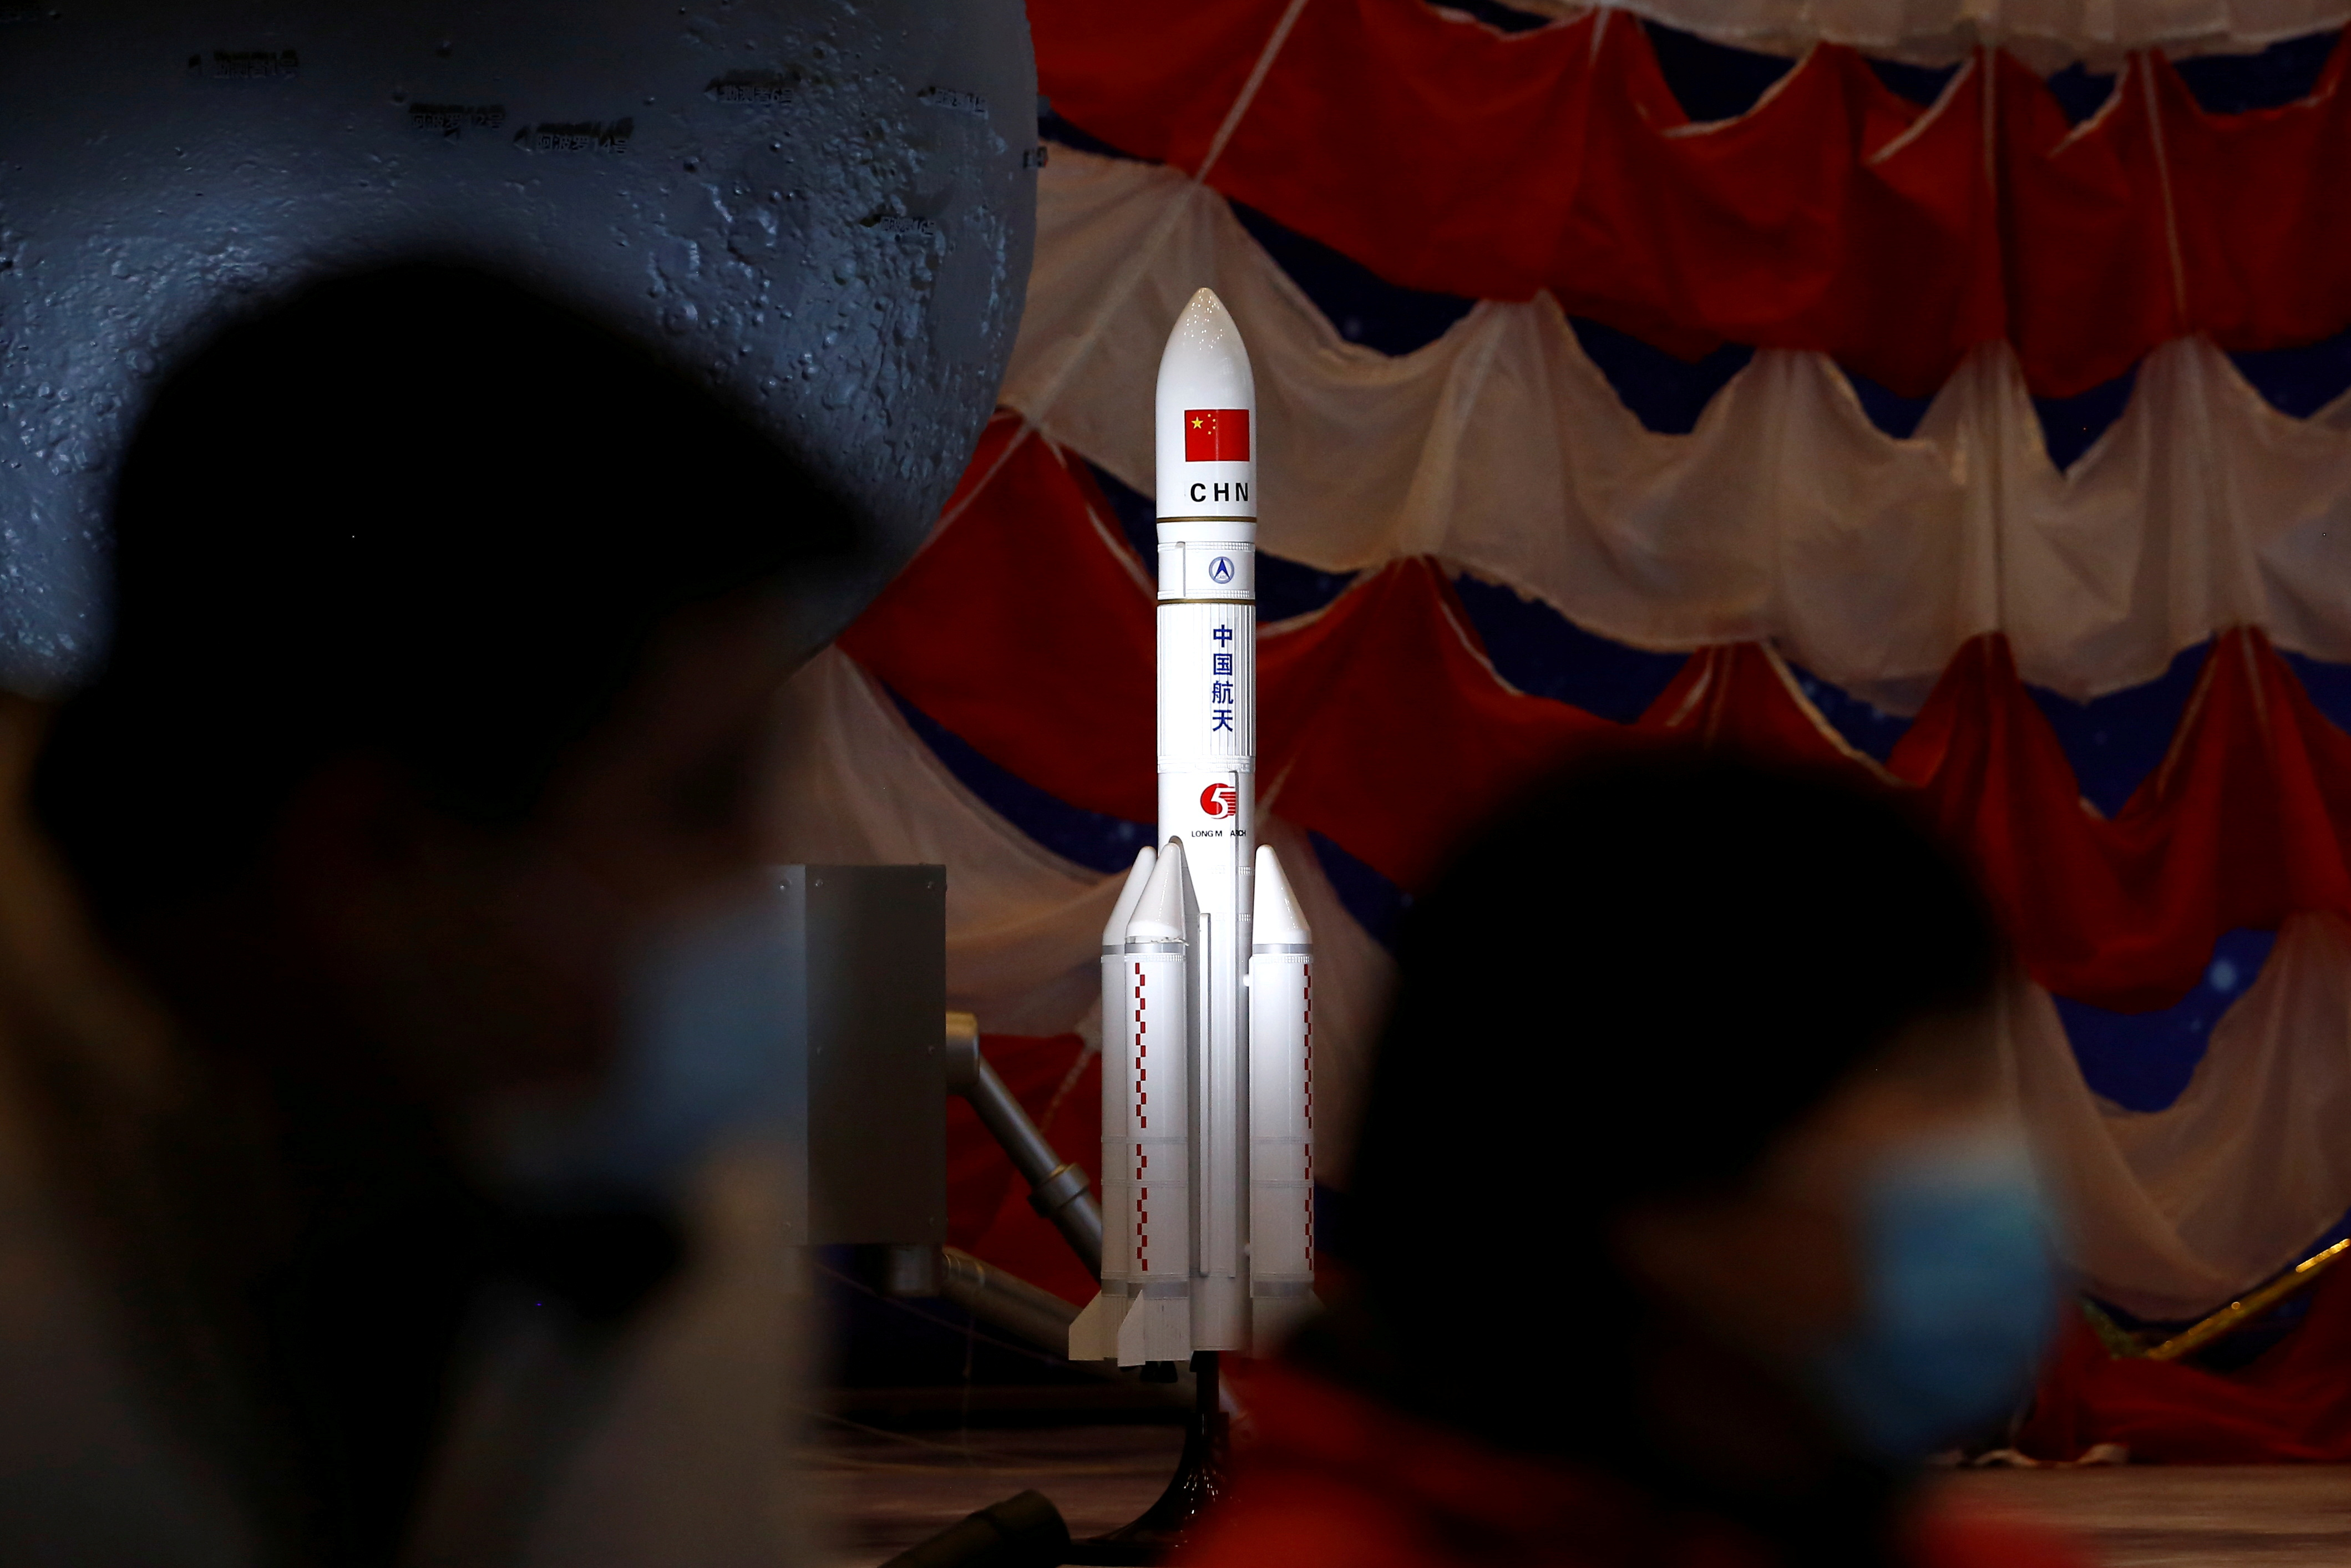 A model of the Long March-5 Y5 rocket from China's lunar exploration program Chang'e-5 Mission is displayed at an exhibition inside the National Museum in Beijing, China March 3, 2021. REUTERS/Tingshu Wang/File Photo